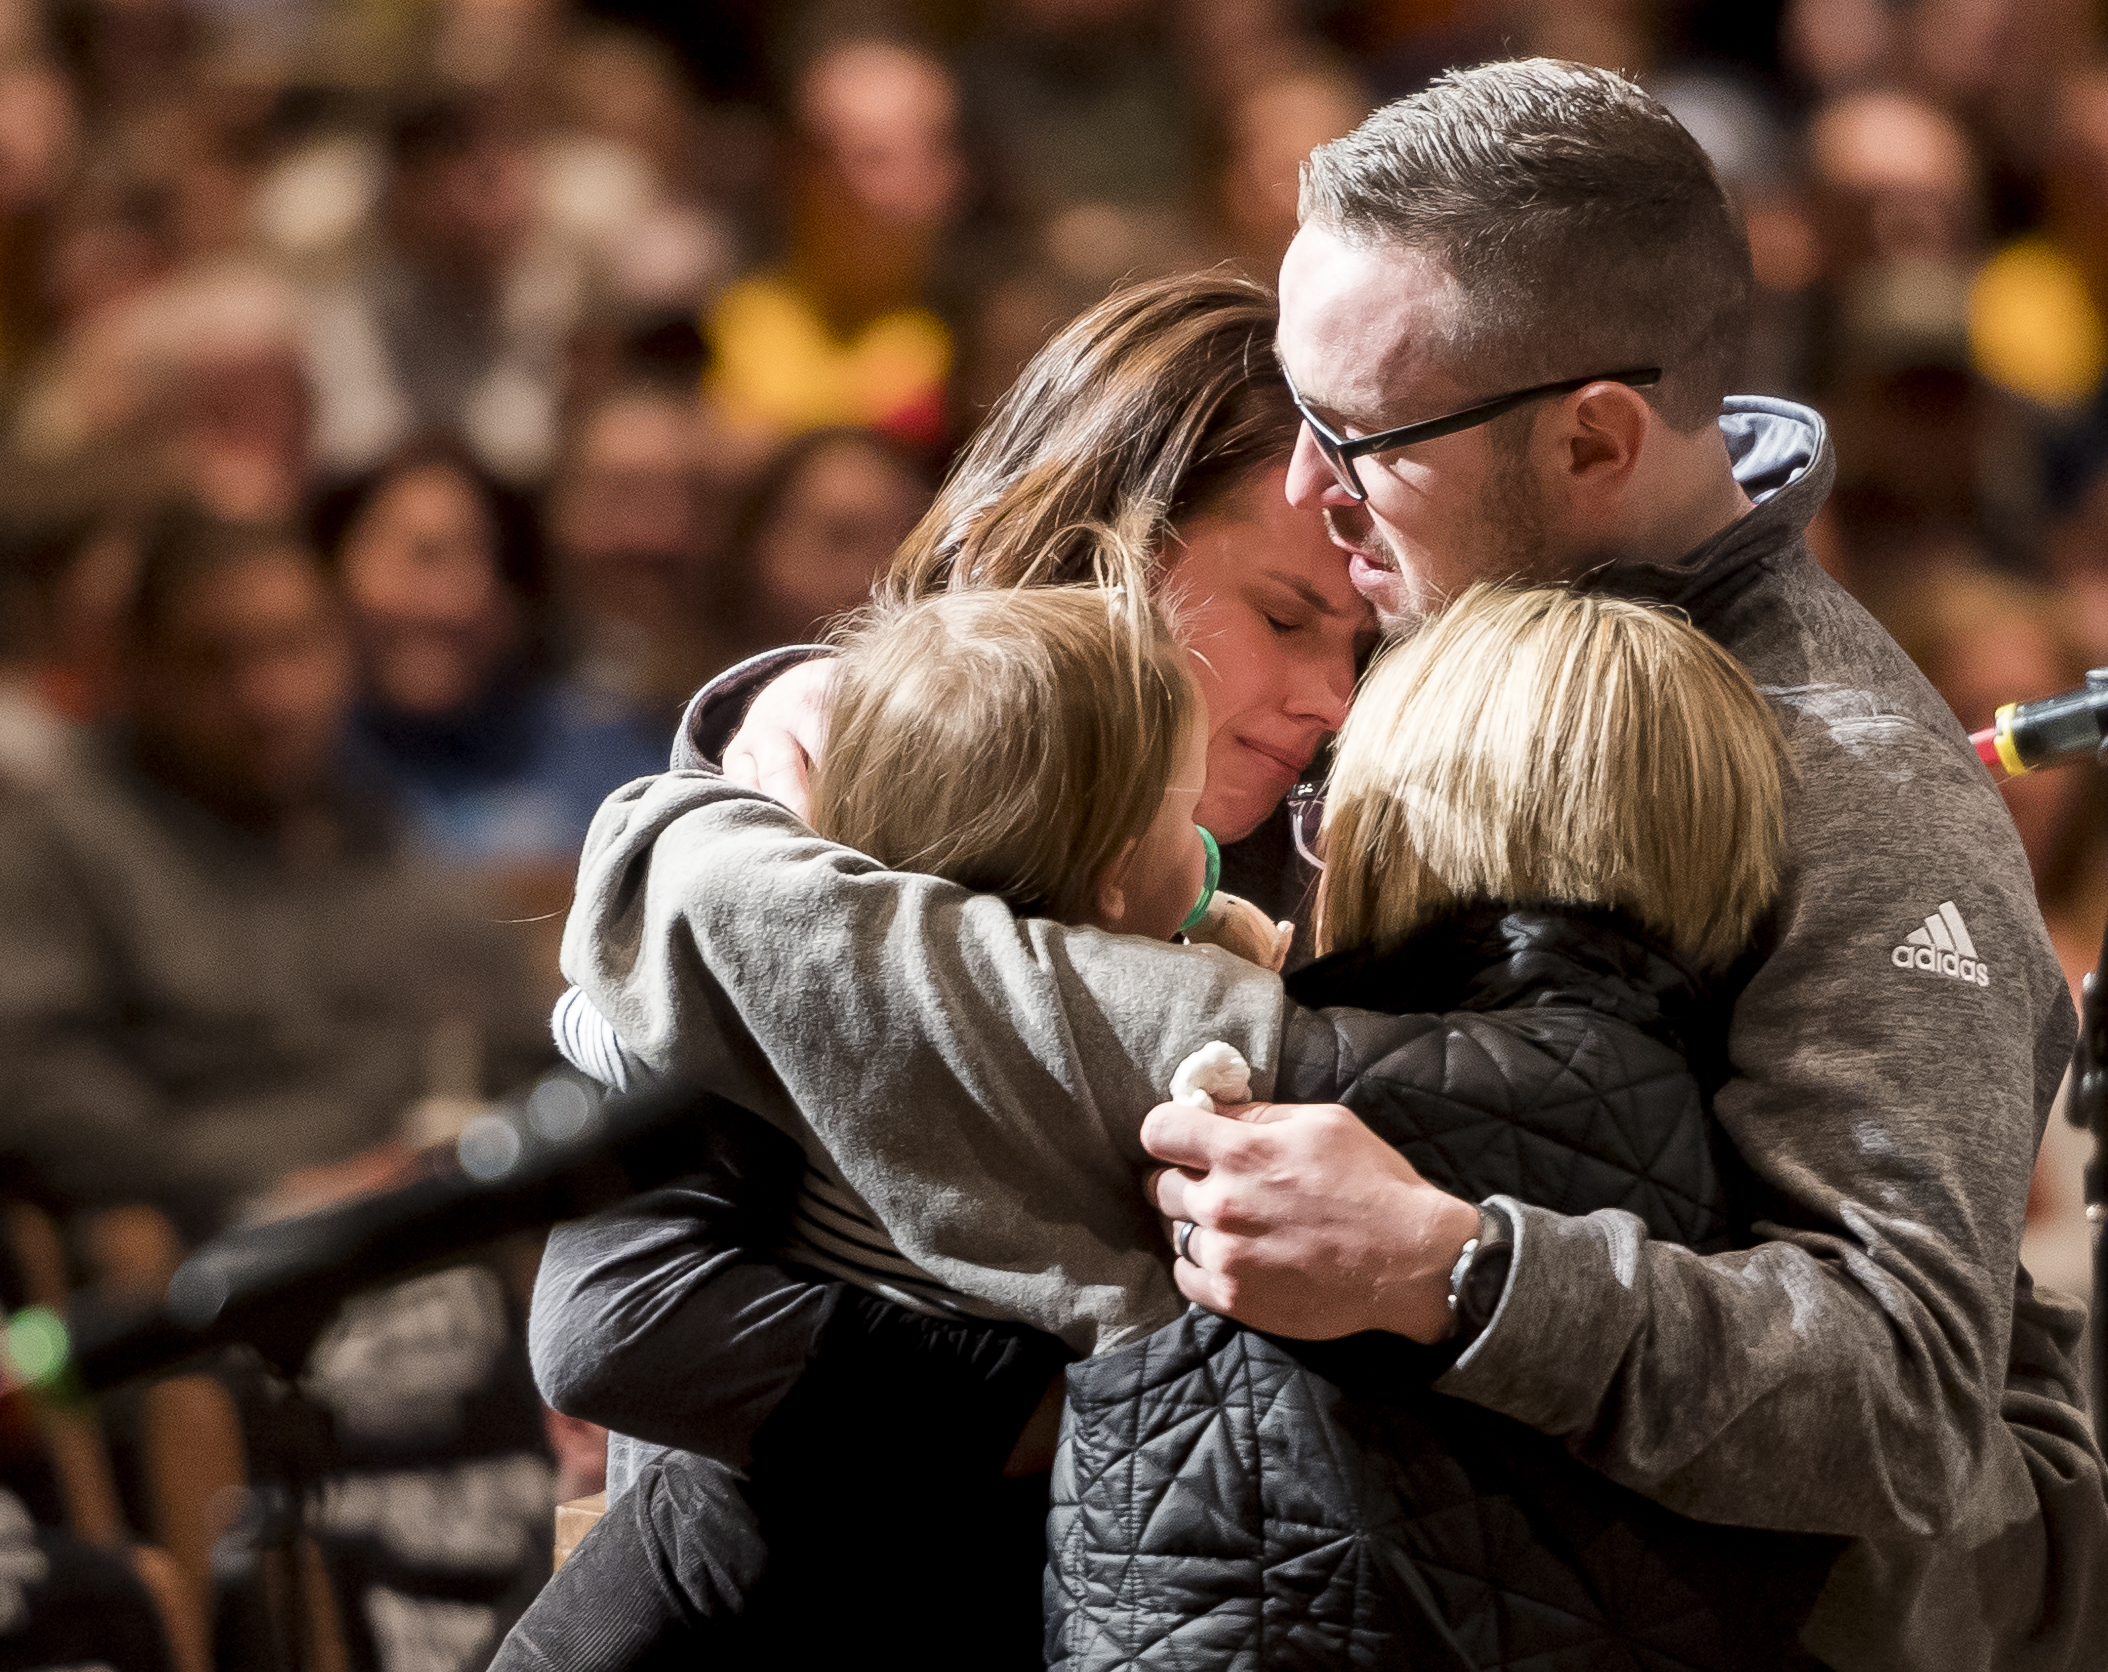 Gracie Zacakri, left, is embraced by her small group as family, friends, and community attended a remembrance and candlelight vigil for Deputy Zackari Parrish at Mission Hills Church in Littleton, Colo., Monday, Jan. 1, 2018.{&amp;nbsp;} (Dougal Brownlie/The Gazette via AP)<p></p>